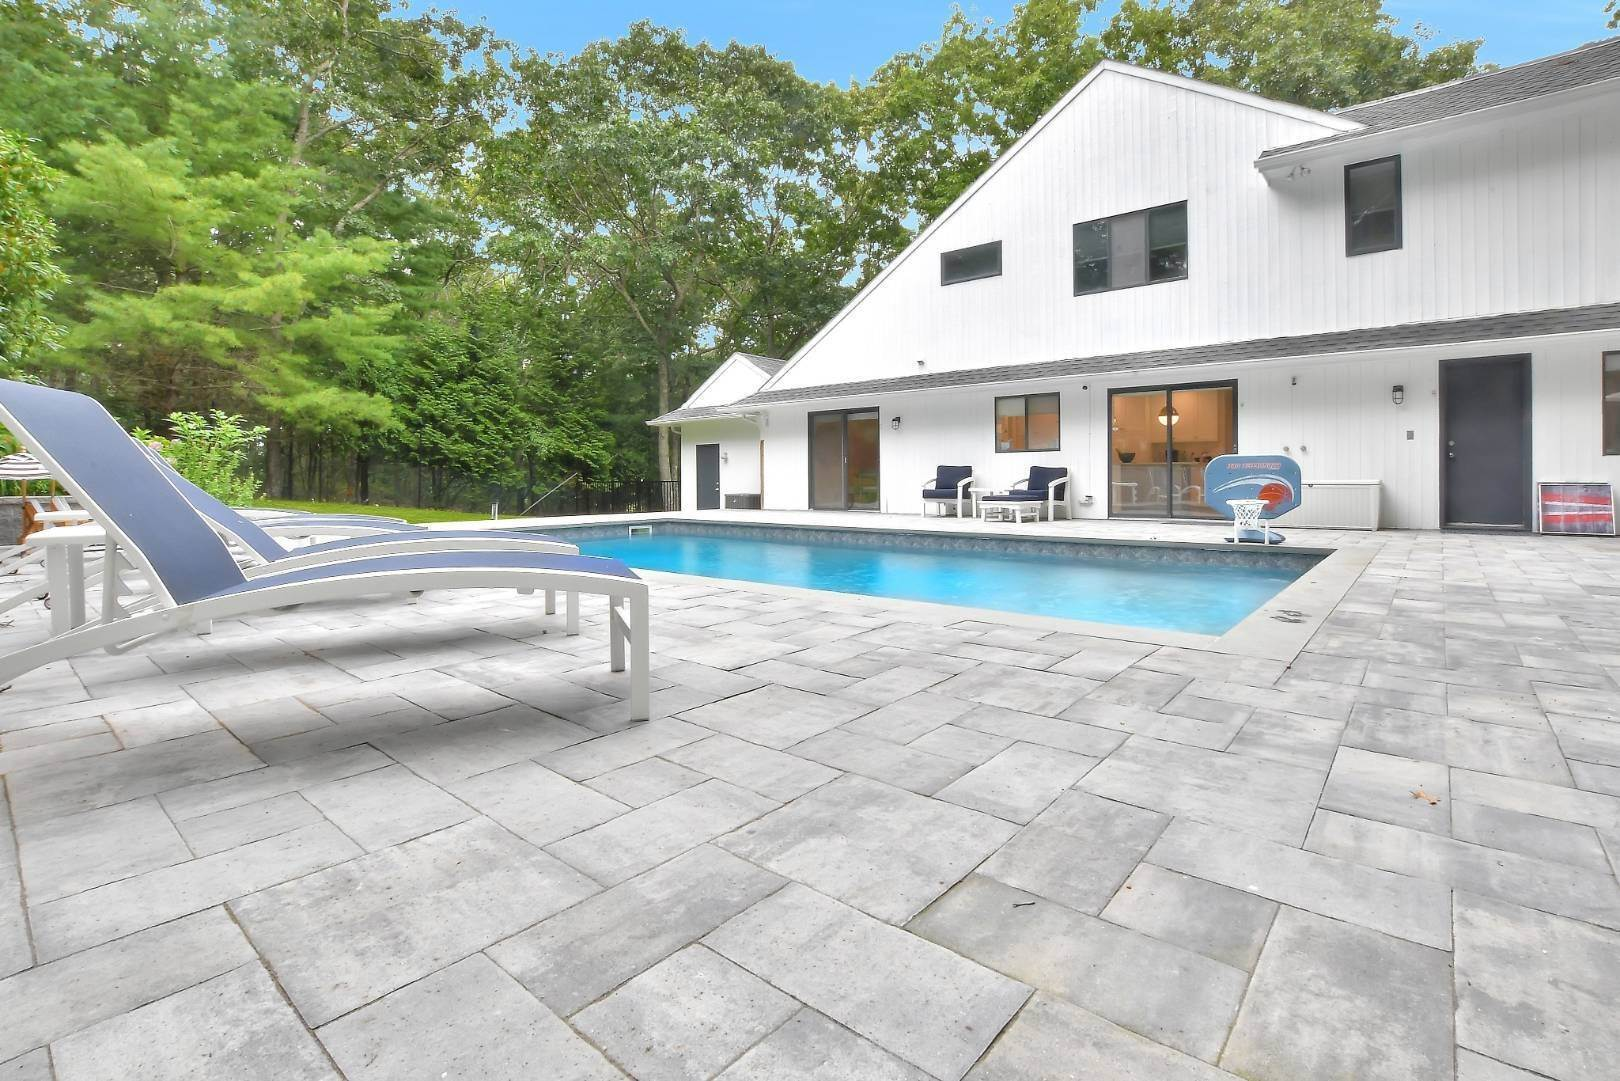 Single Family Home for Sale at Bridgehampton Equestrian Country! 132 Sea Farm Ln, Bridgehampton, NY 11932